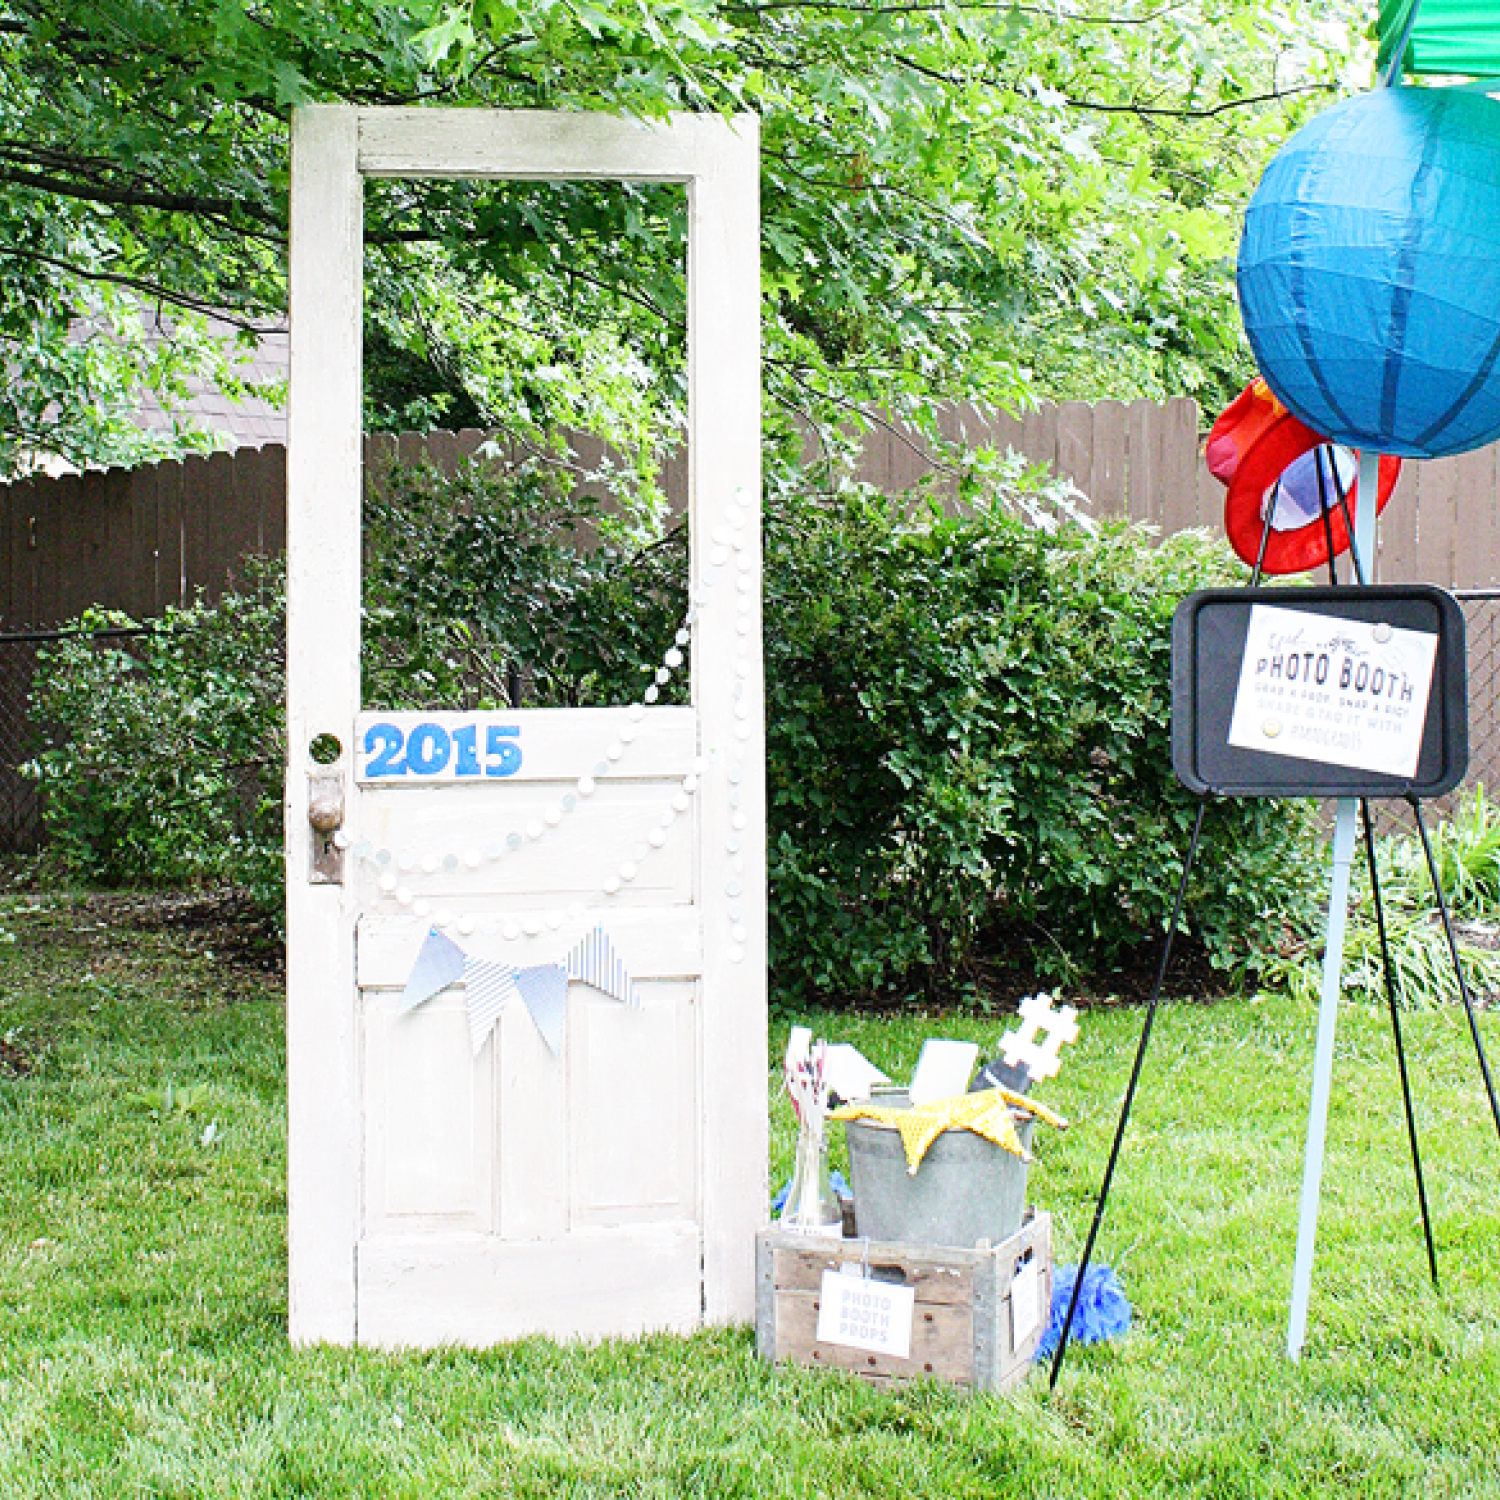 15 Graduation Party Ideas—From Preschool to High School - parenting.com